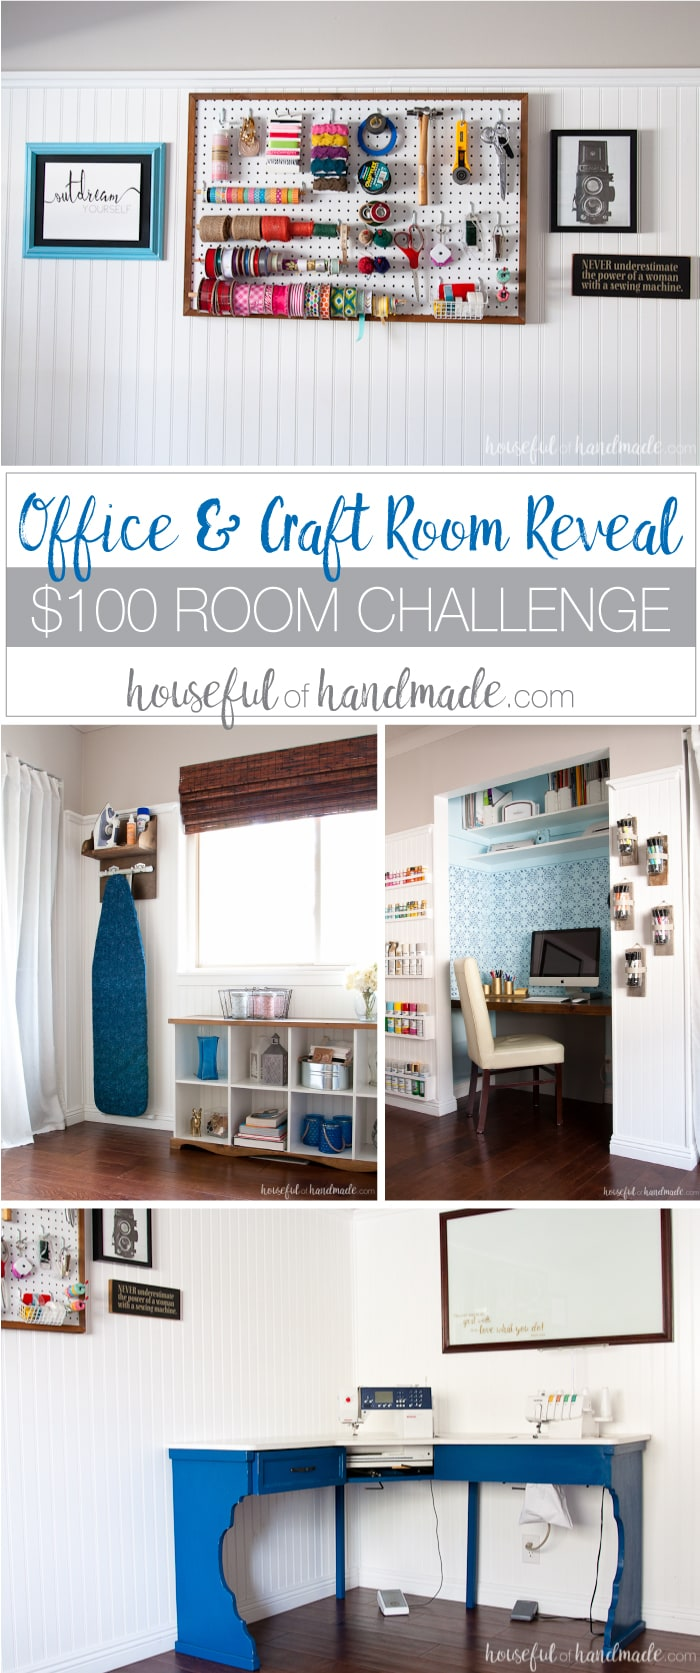 I love this chic farmhouse style office & craft room reveal! The entire room was redone for only $100 in 1 month. Lots of creative projects, including upcycling cheap furniture into beautiful pieces with character. See the full reveal at Housefulofhandmade.com | $100 Room Challenge #office #craftroom #sewingroom #farmhouse #diy #budgetremodel